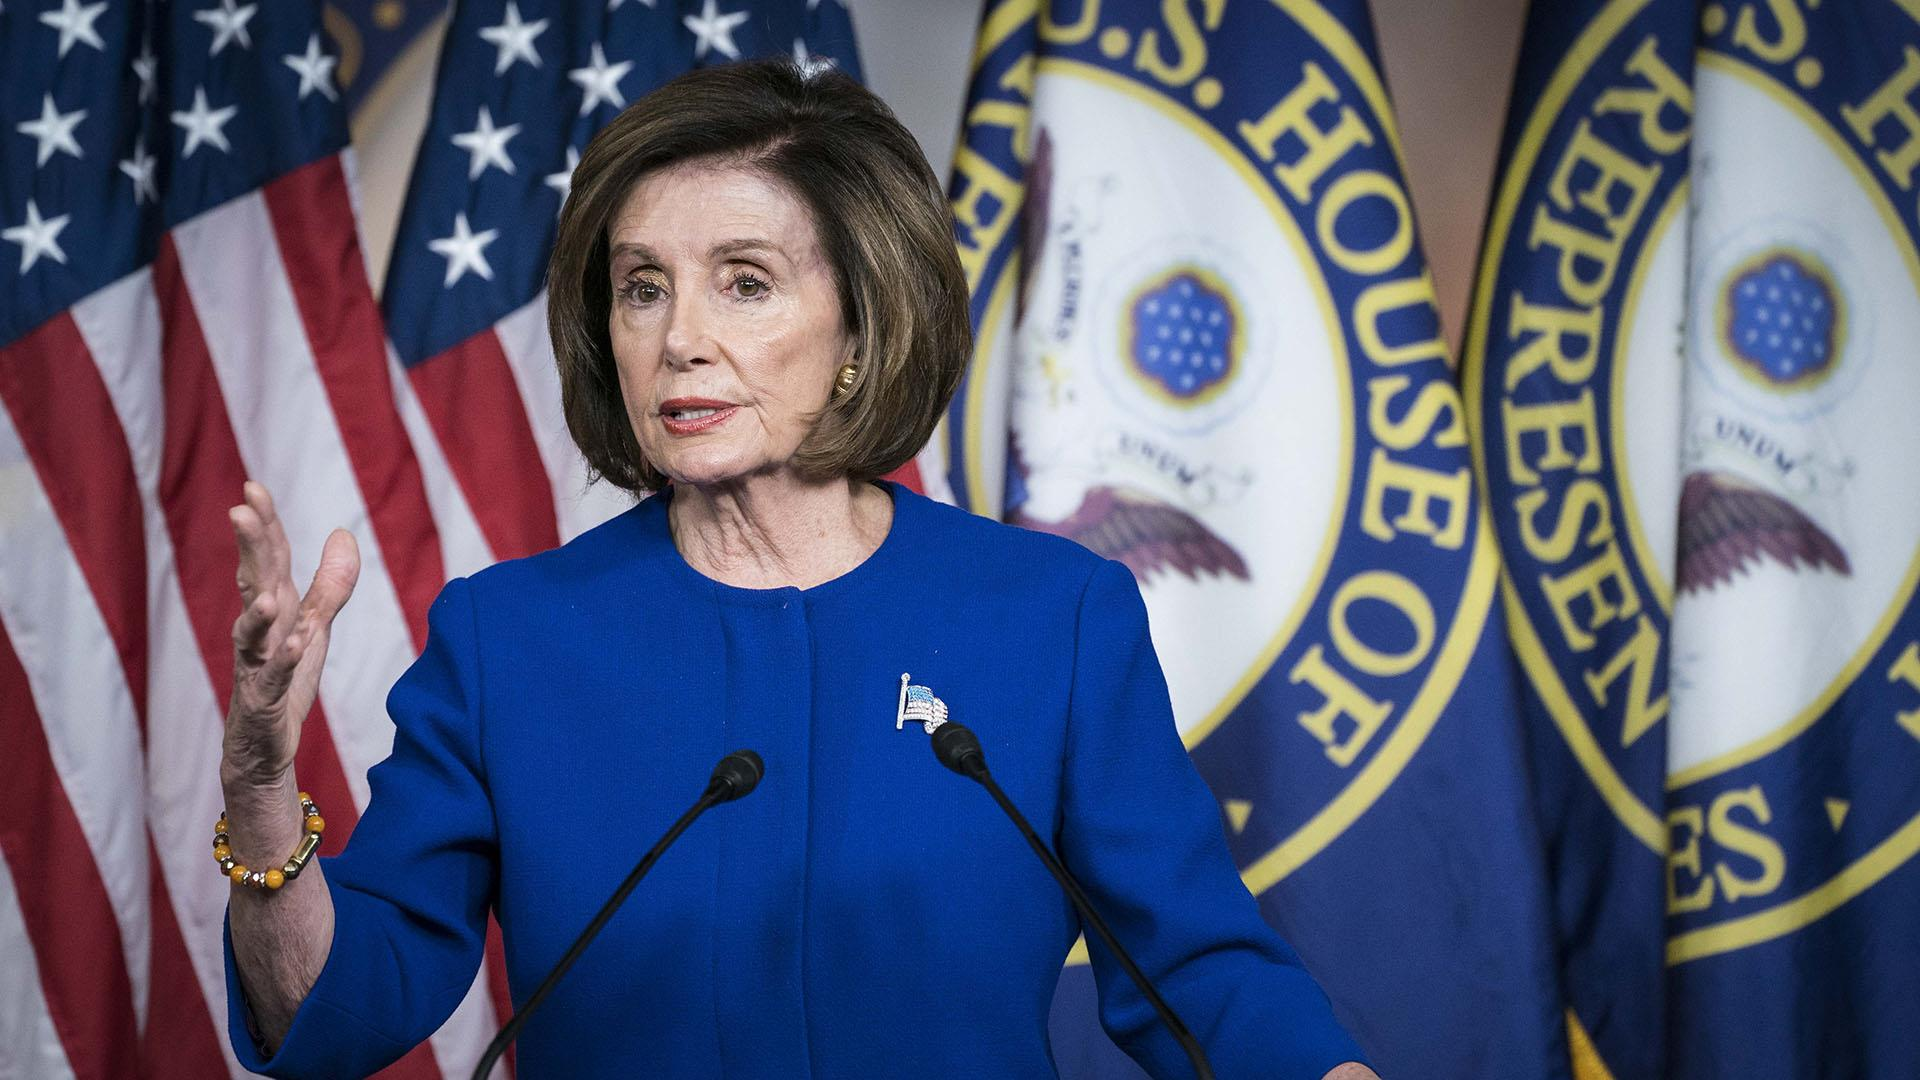 Pelosi: A.G. Barr 'has deeply damaged the rule of law'